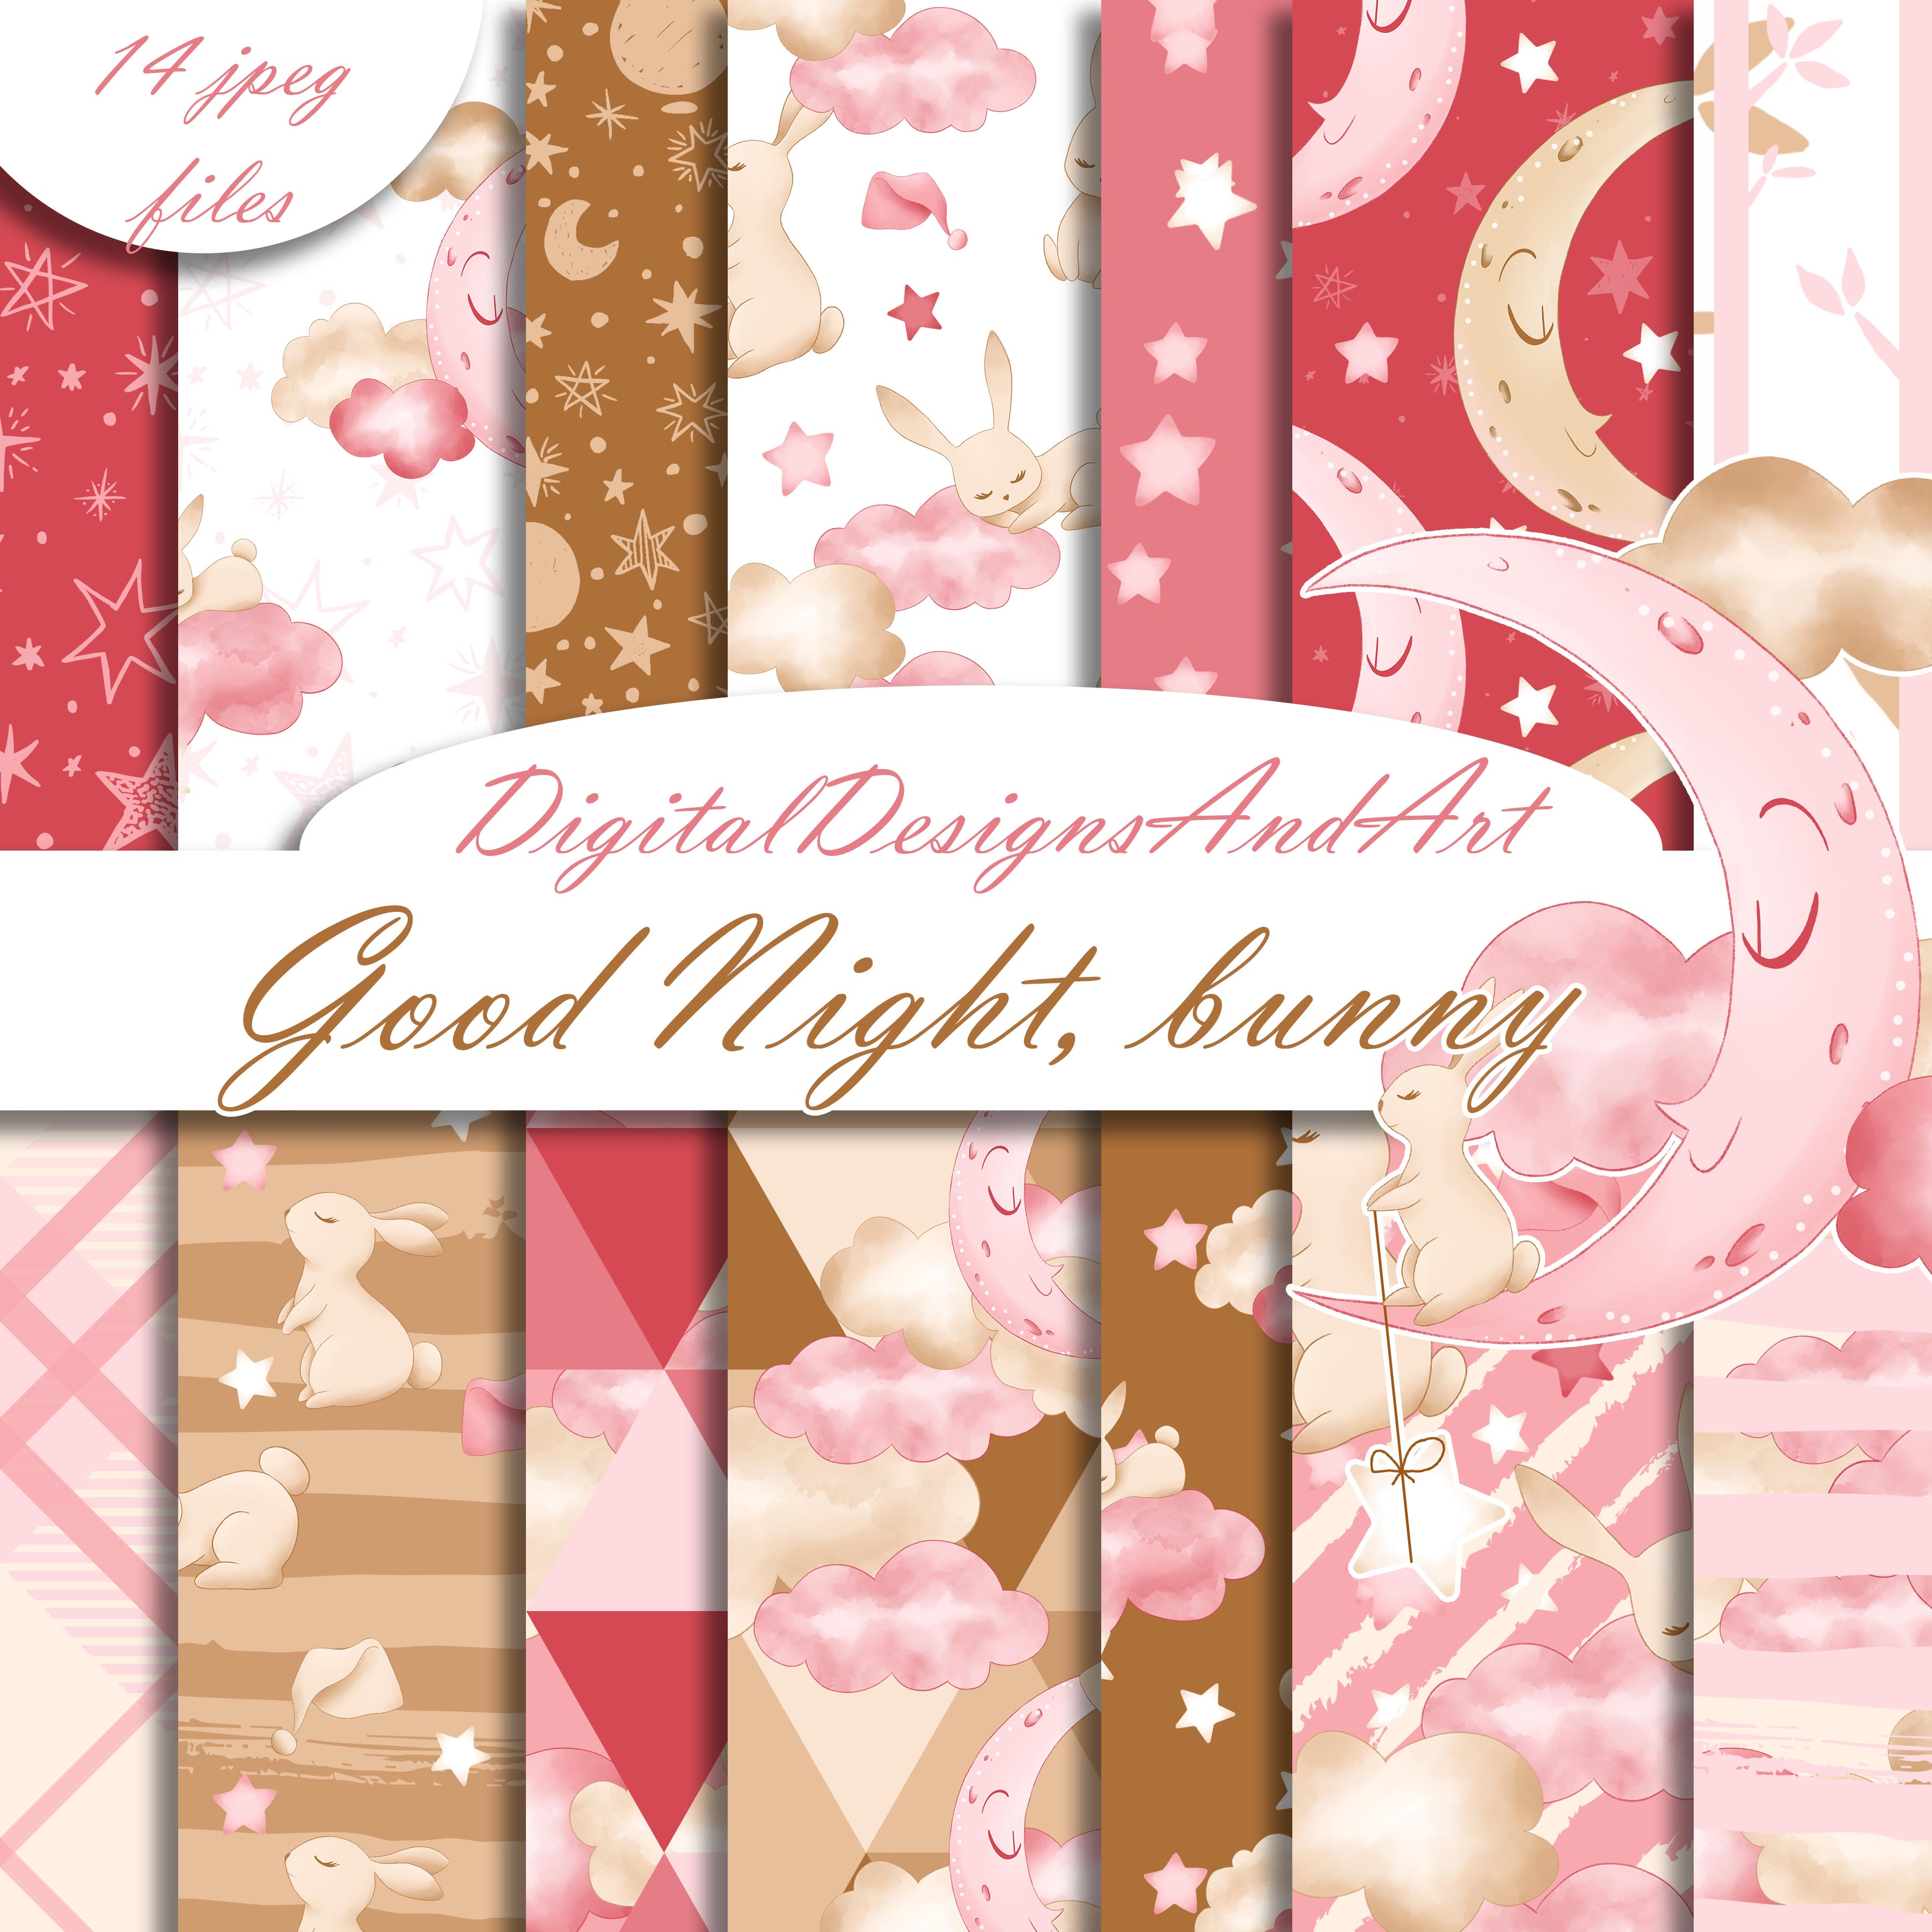 Good night bunny pattern in pink example image 1